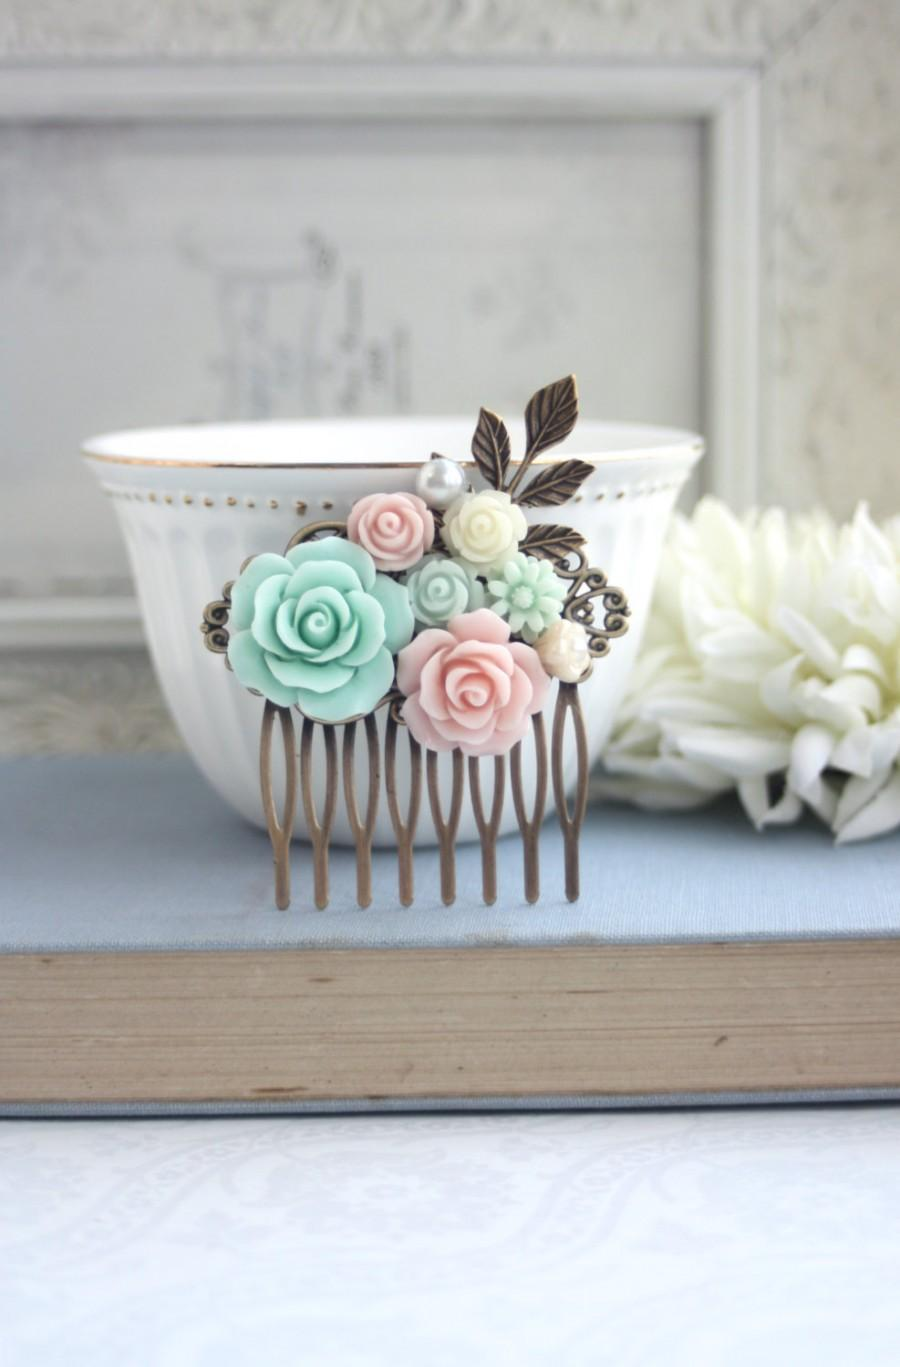 Wedding - Pink and Mint Floral Collage Comb, Romantic Bridal Hair Comb, Rustic Wedding Rose Comb, Pearl Leaf Hair Accessories, Pink Bridesmaids Gifts